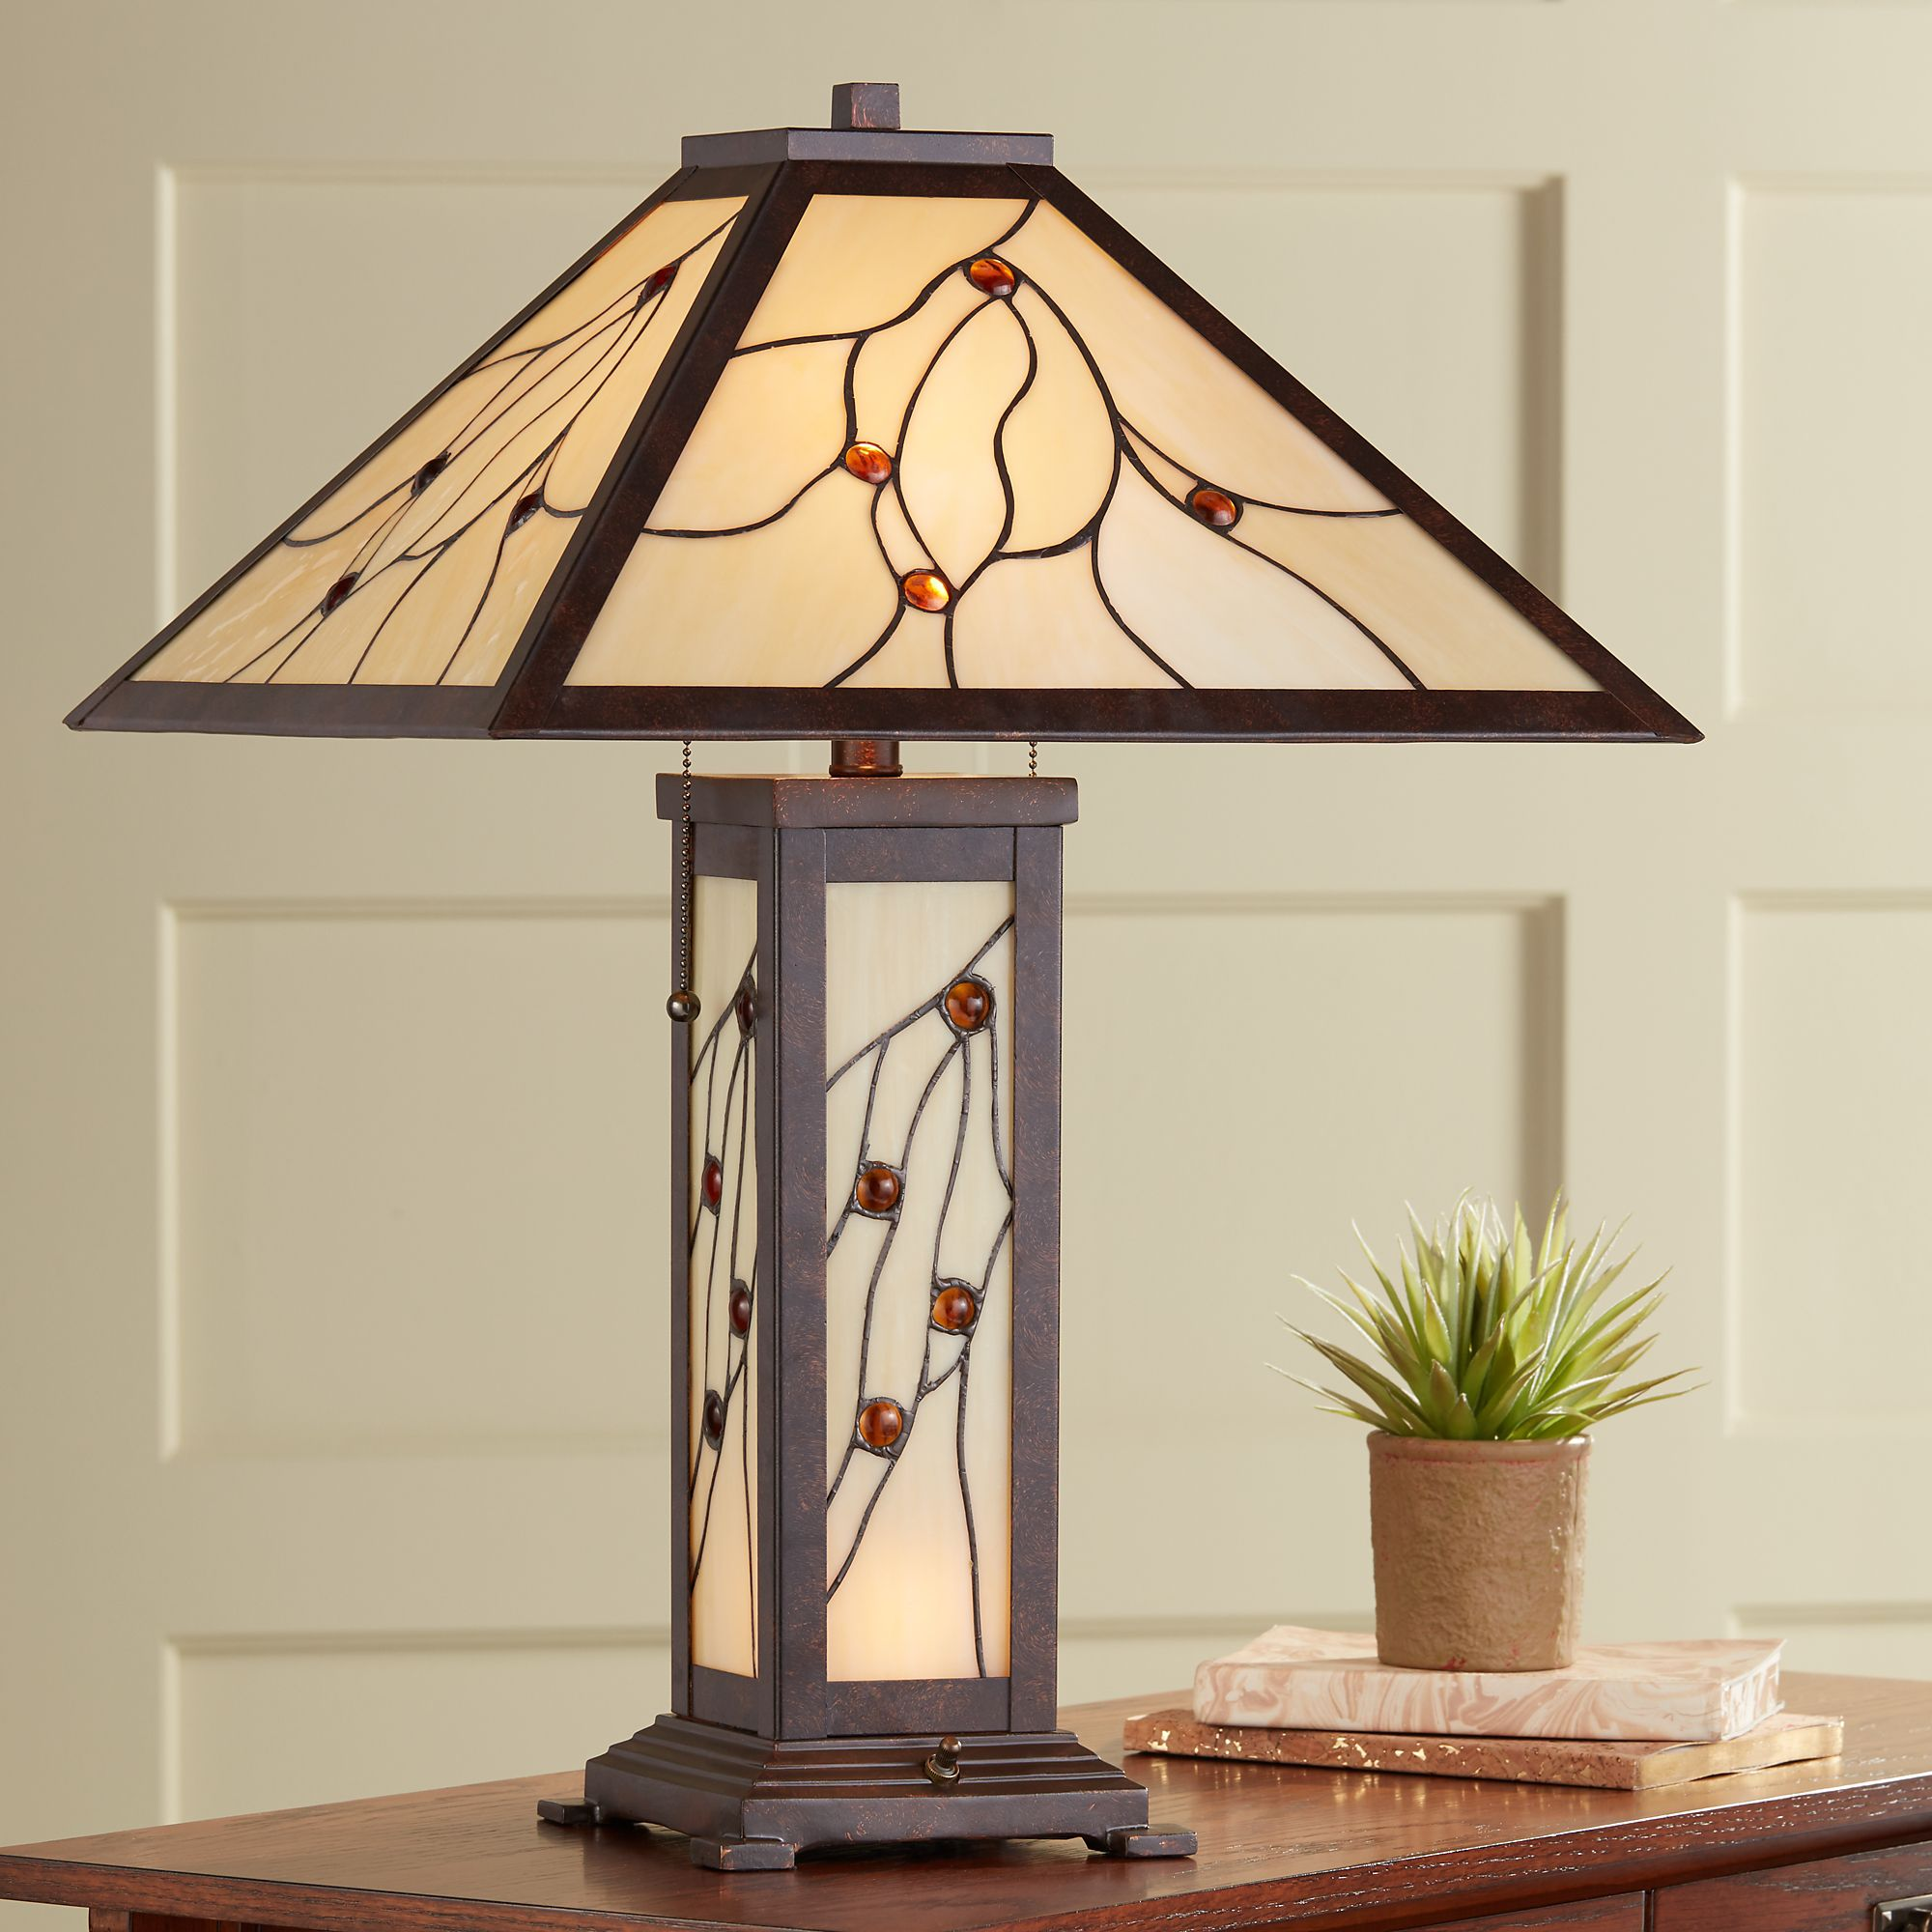 robert louis tiffany mission table lamp with nightlight classic bronze stained glass for living room family bedroom bedside walmart com